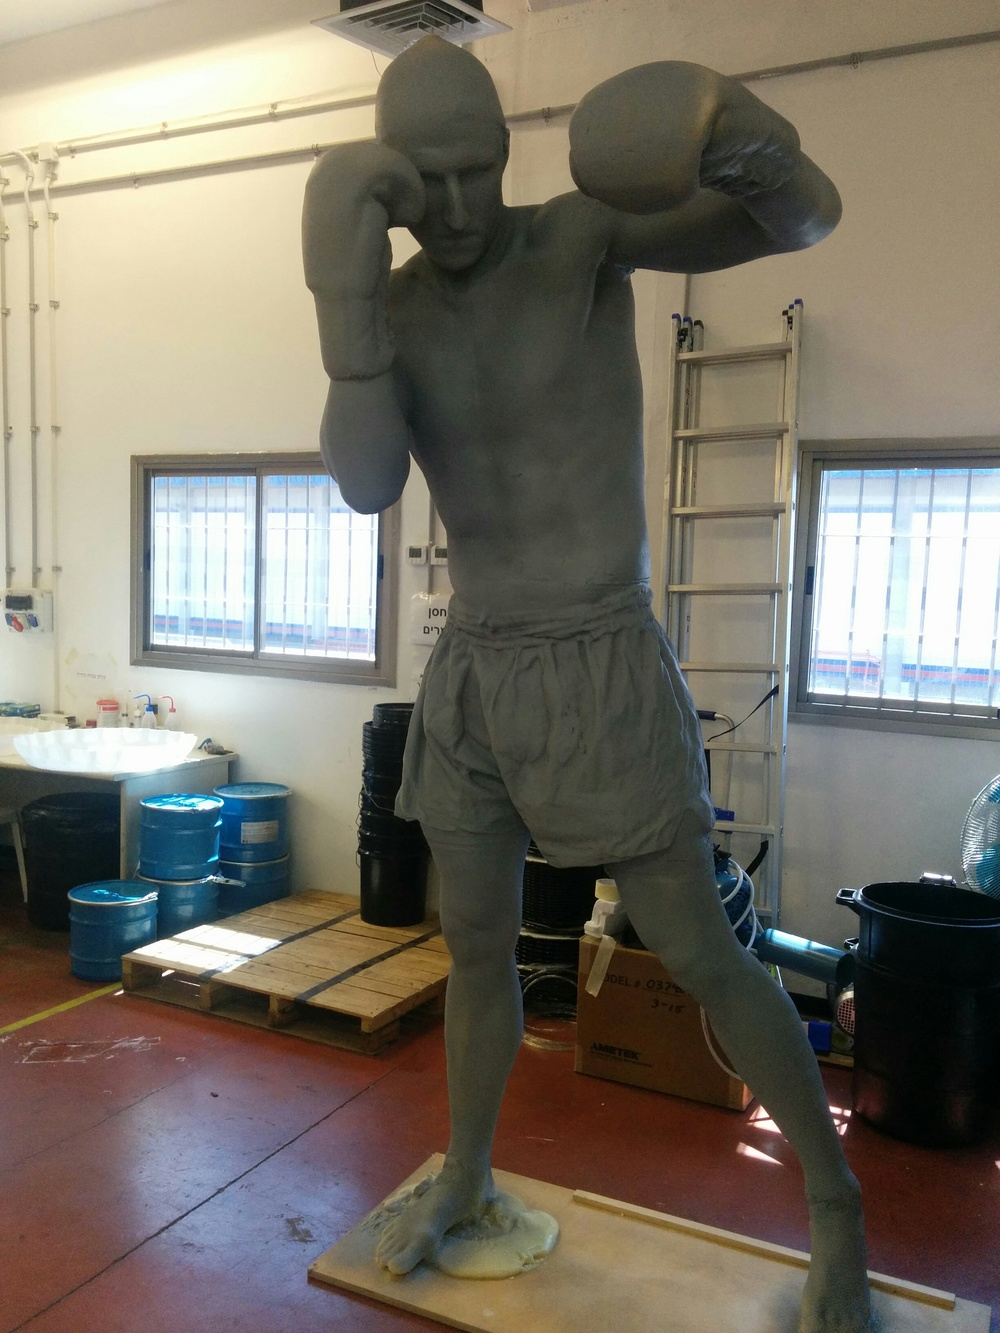 A full-size boxing figurine 3D printed on Massivit's large-format 3D printer